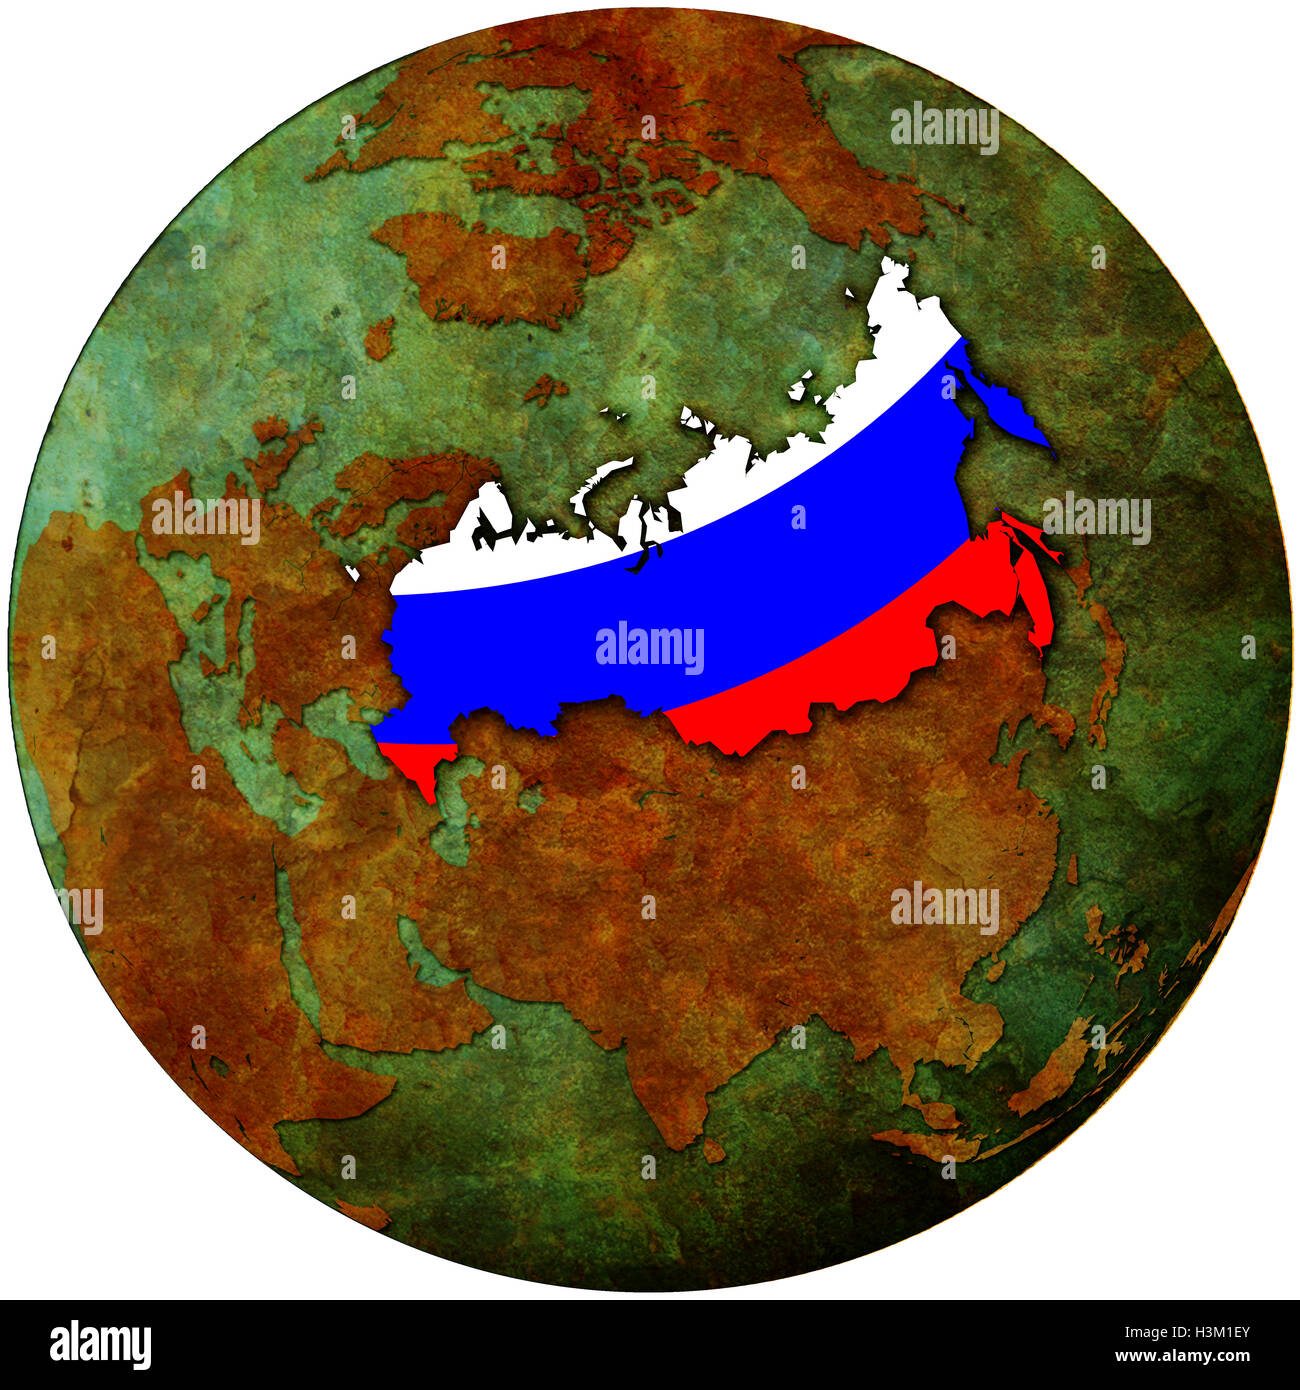 Russia flag on map of earth globe stock photo 122756787 alamy russia flag on map of earth globe gumiabroncs Choice Image